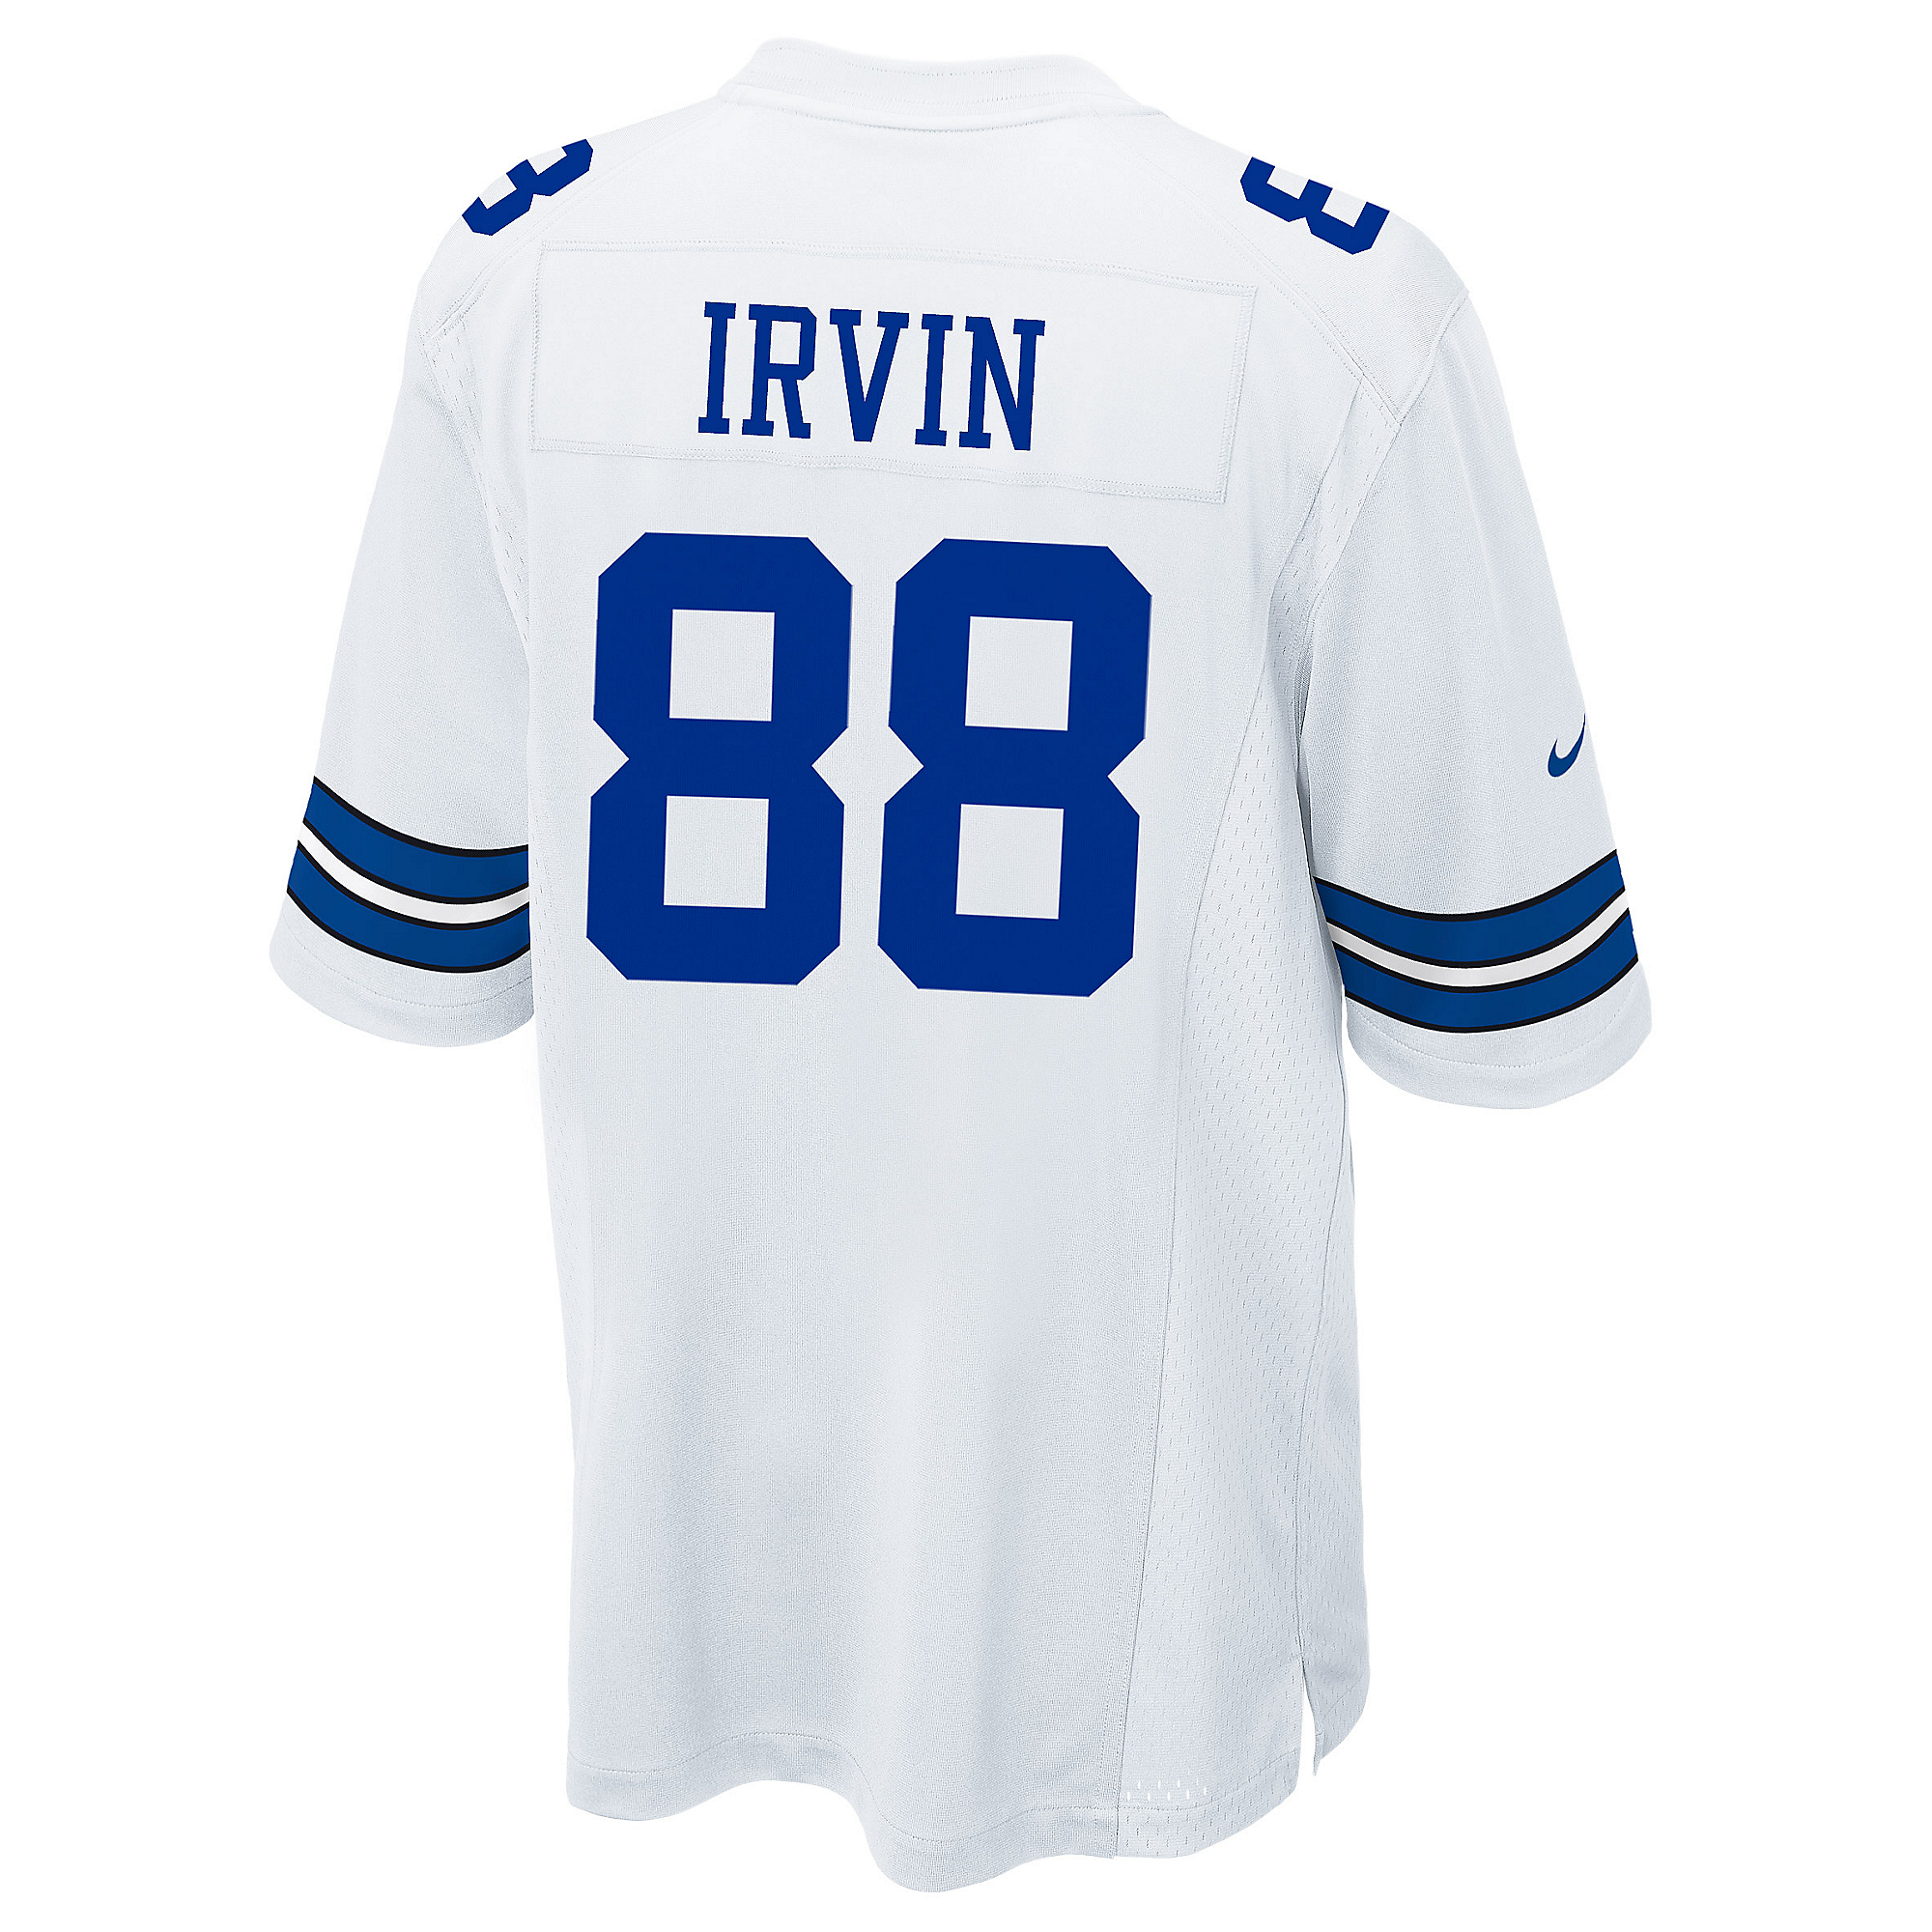 Dallas Cowboys Legend Michael Irvin Nike Game Replica Jersey